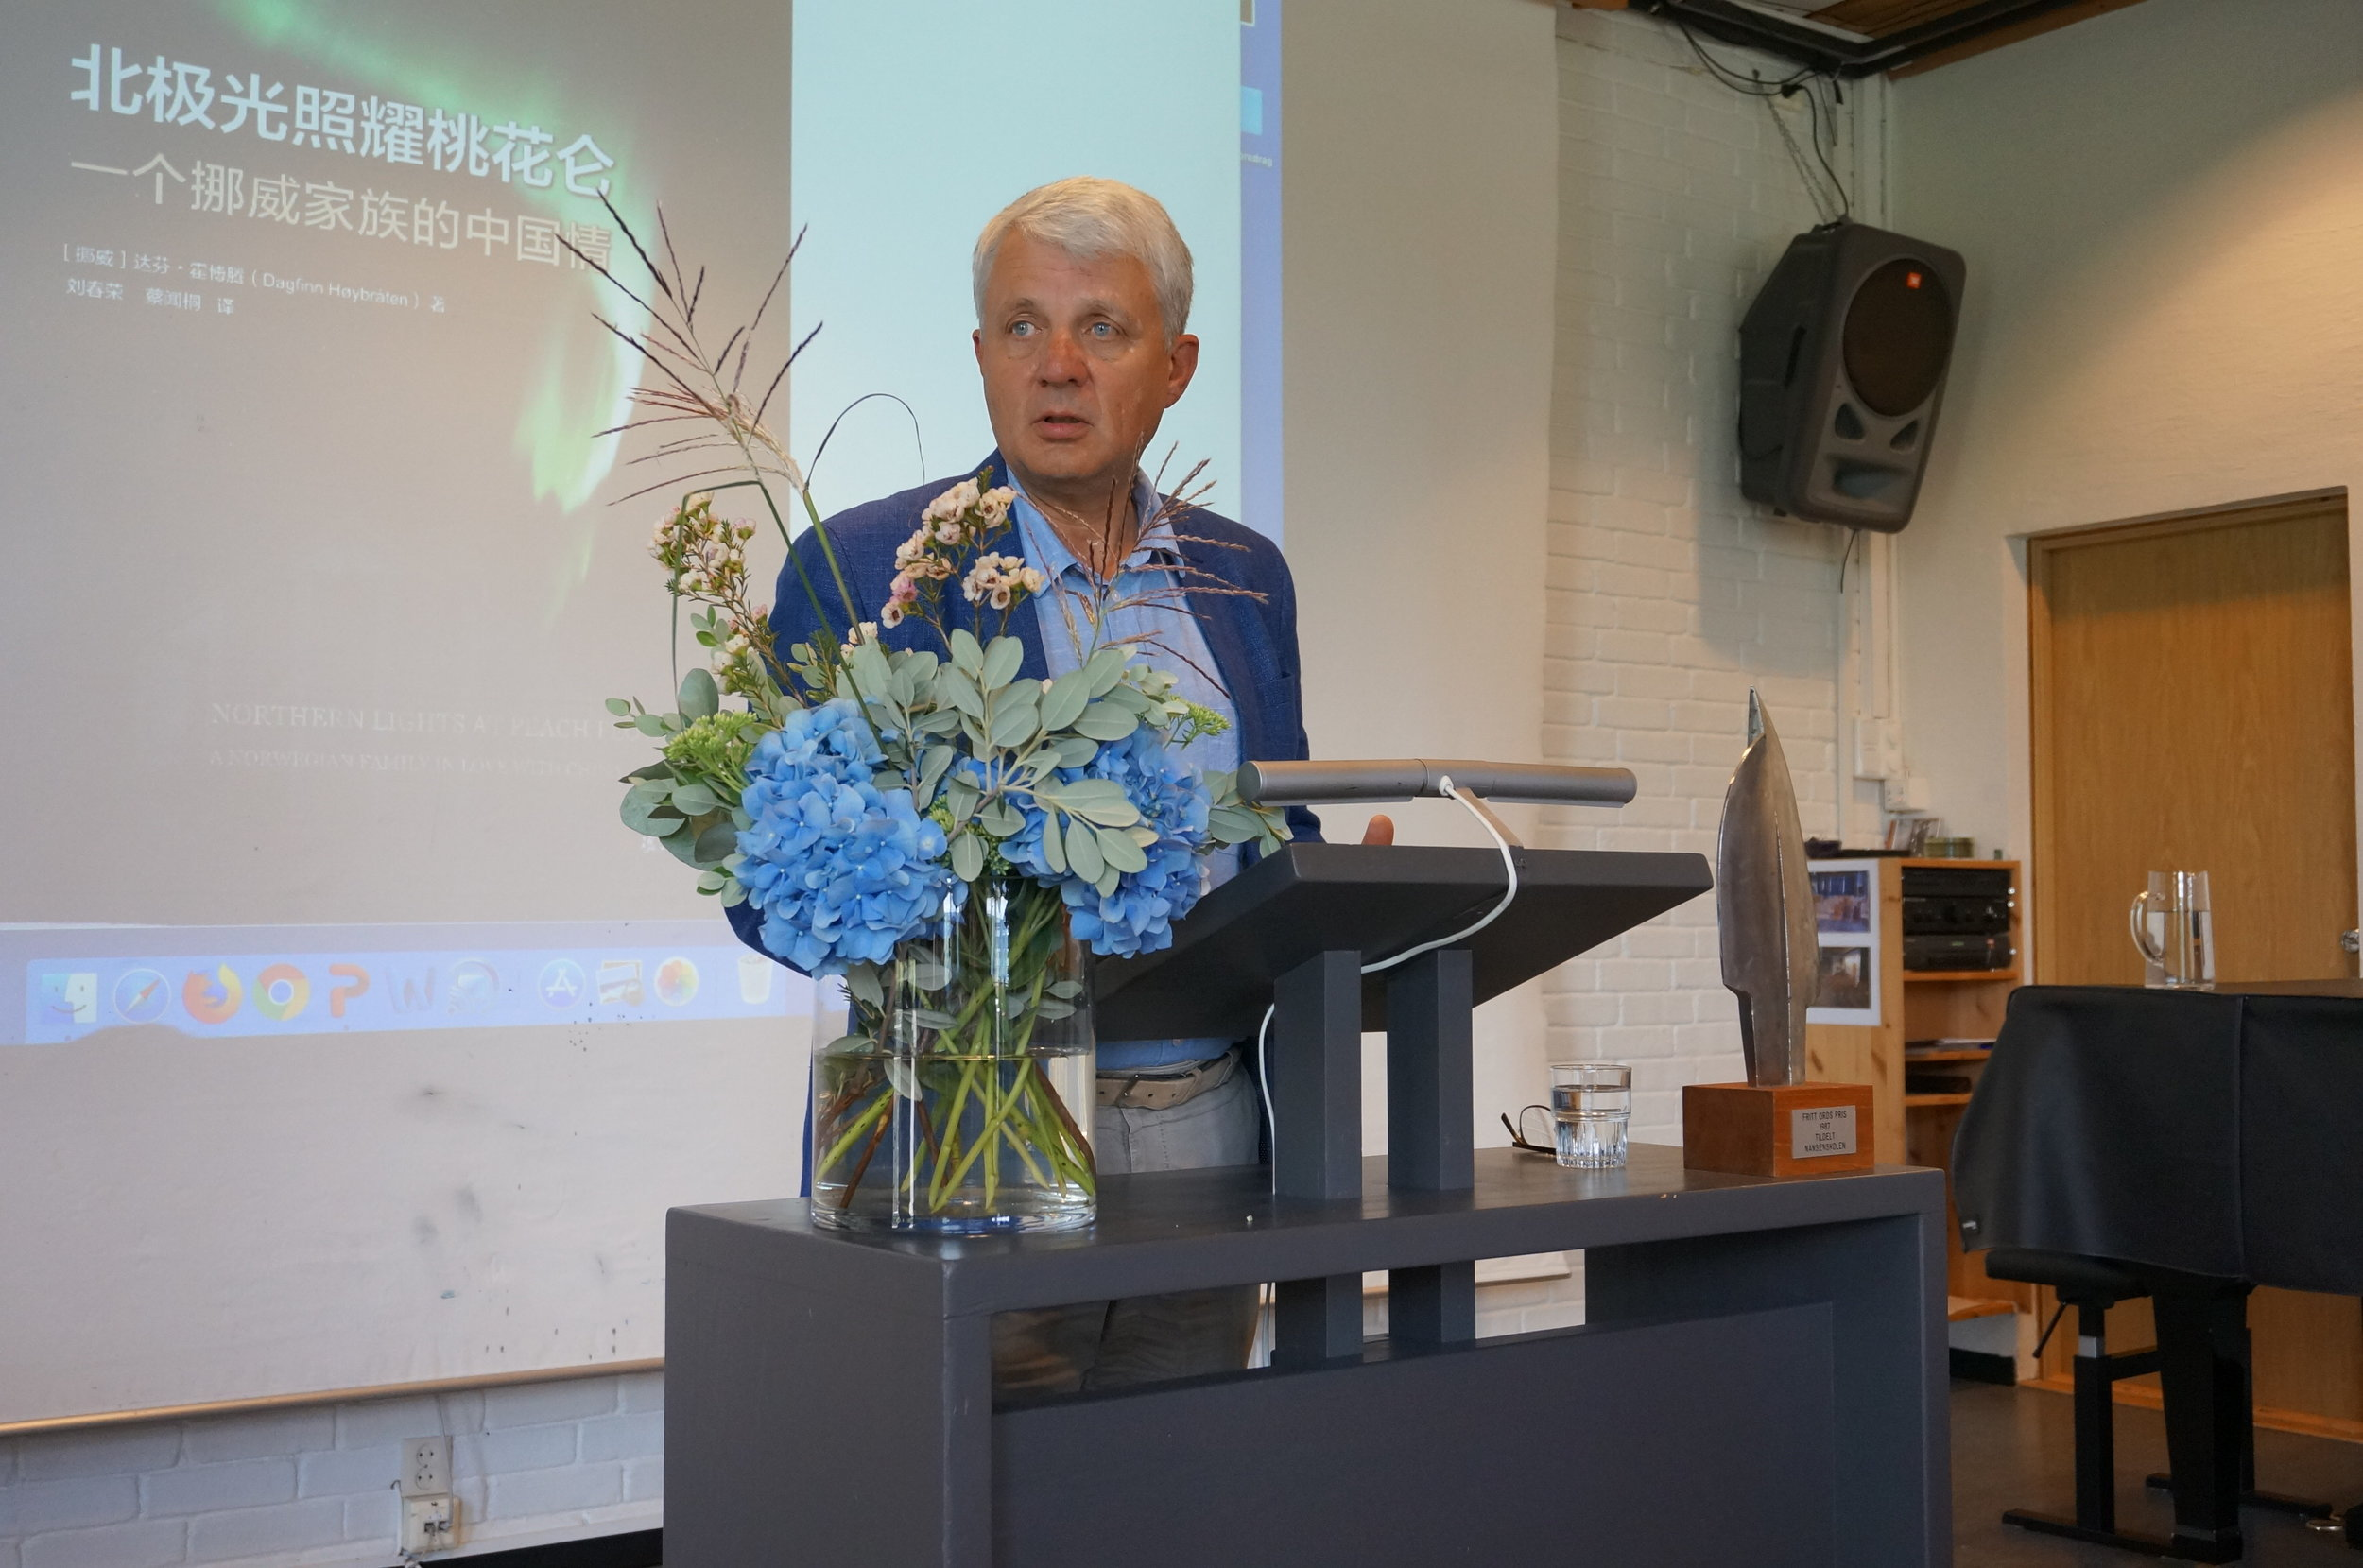 Dagfinn Høybråten, Secretary General of the Norwegian Church Aid, during his lecture on how his life was shaped by the Nordic model